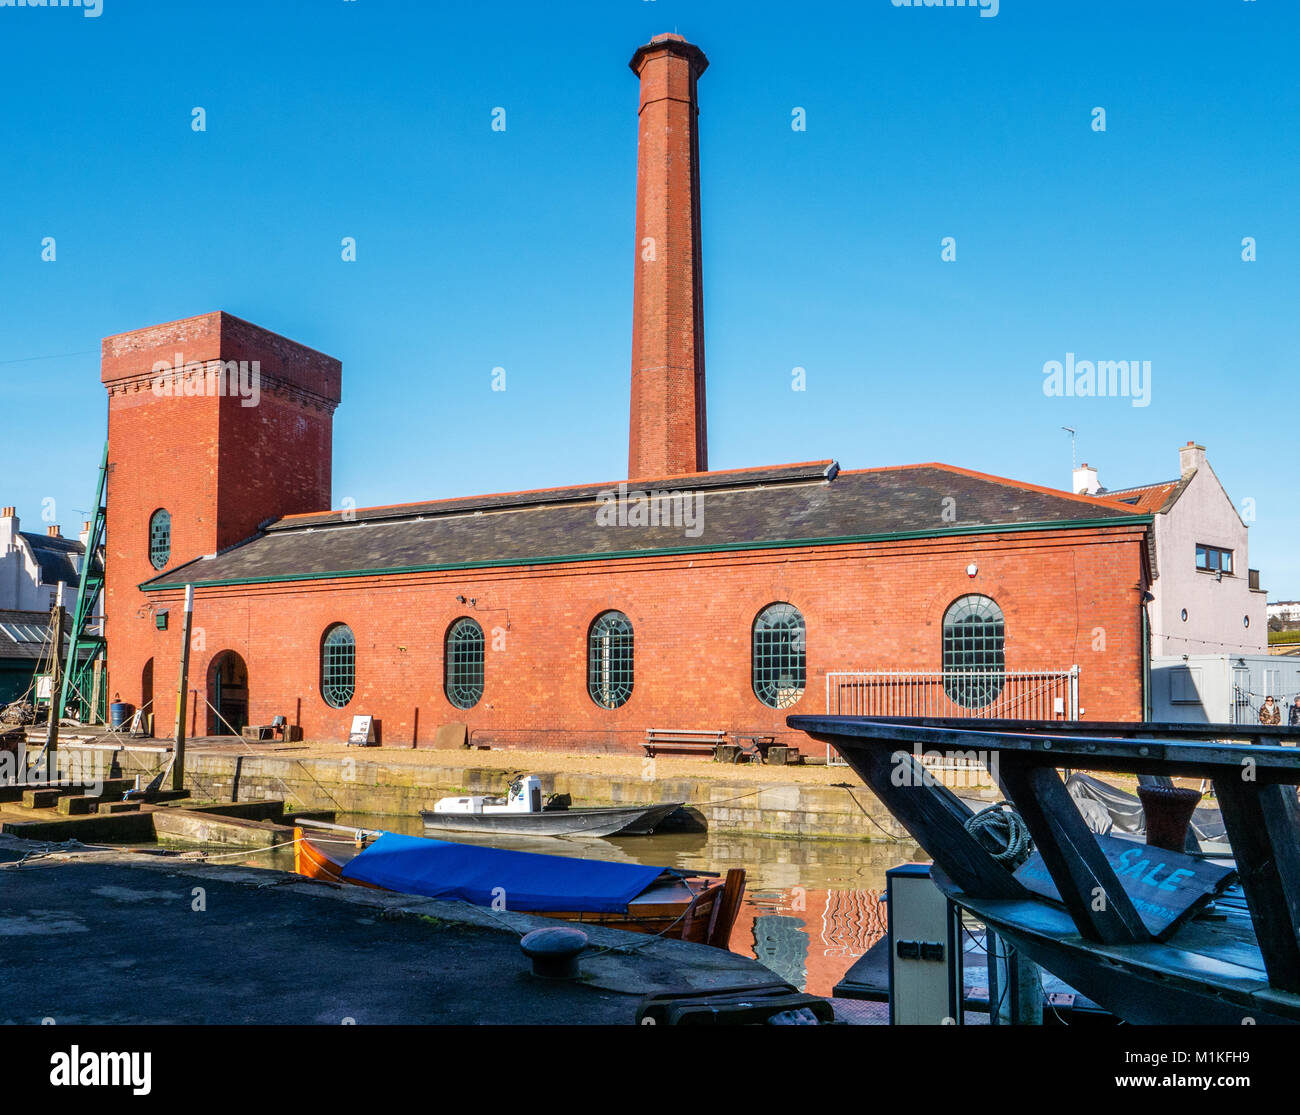 The Victorian pump room building at Underfall Yard boatyard on the floating harbour in Bristol UK which powered - Stock Image